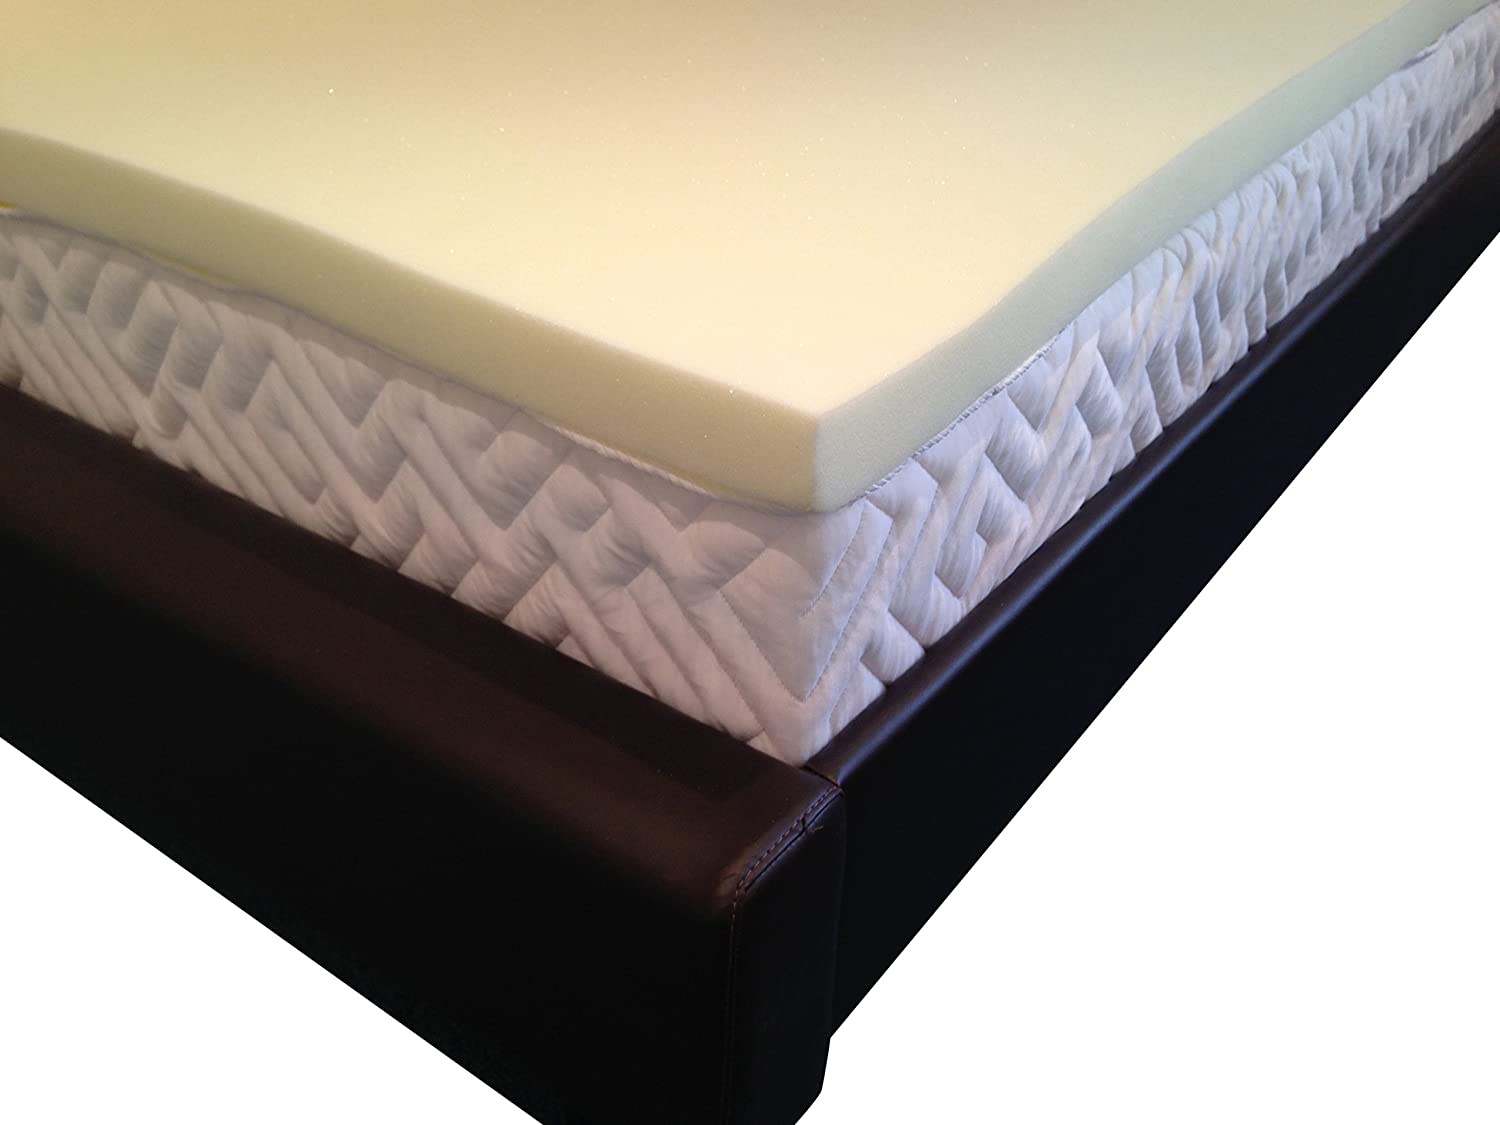 Memory Foam Mattress Topper with Cover, 2 inch - UK Single Orderexit